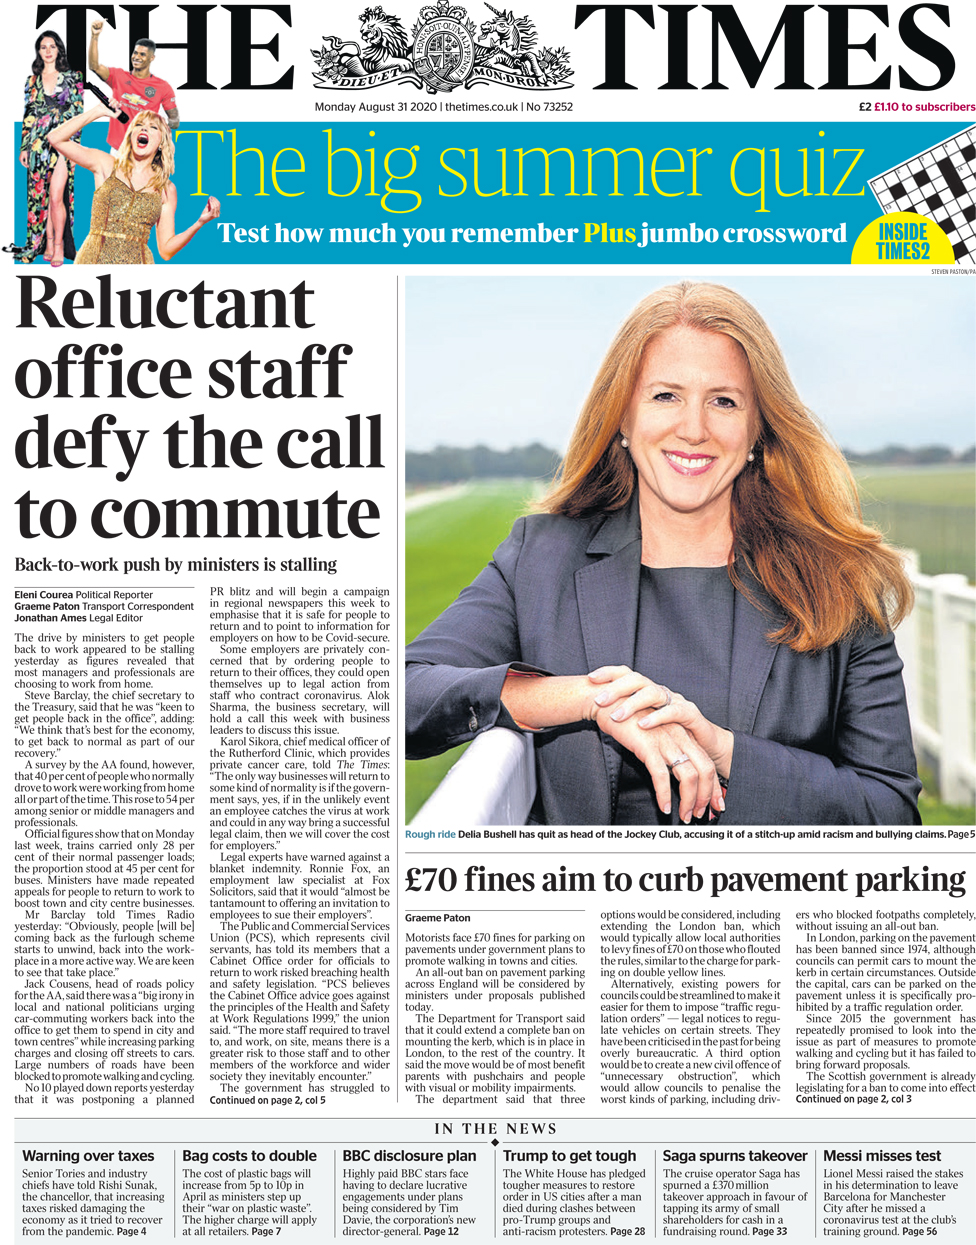 The Times front page 31 August 2020